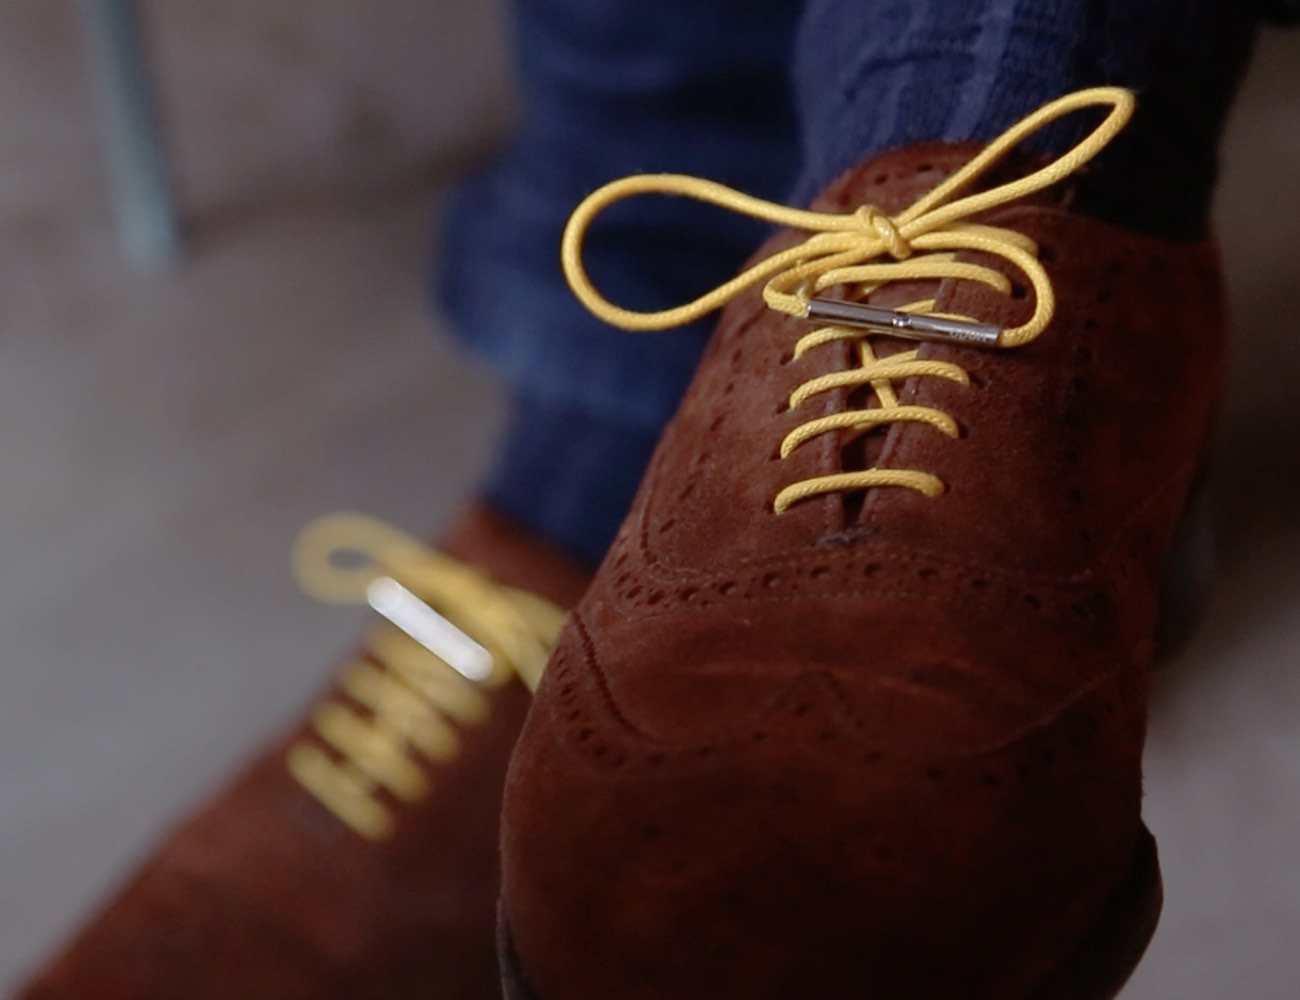 UNDO+Laces+%26%238211%3B+Offset+The+Carbon+Footprint+Of+Shoes+With+Style